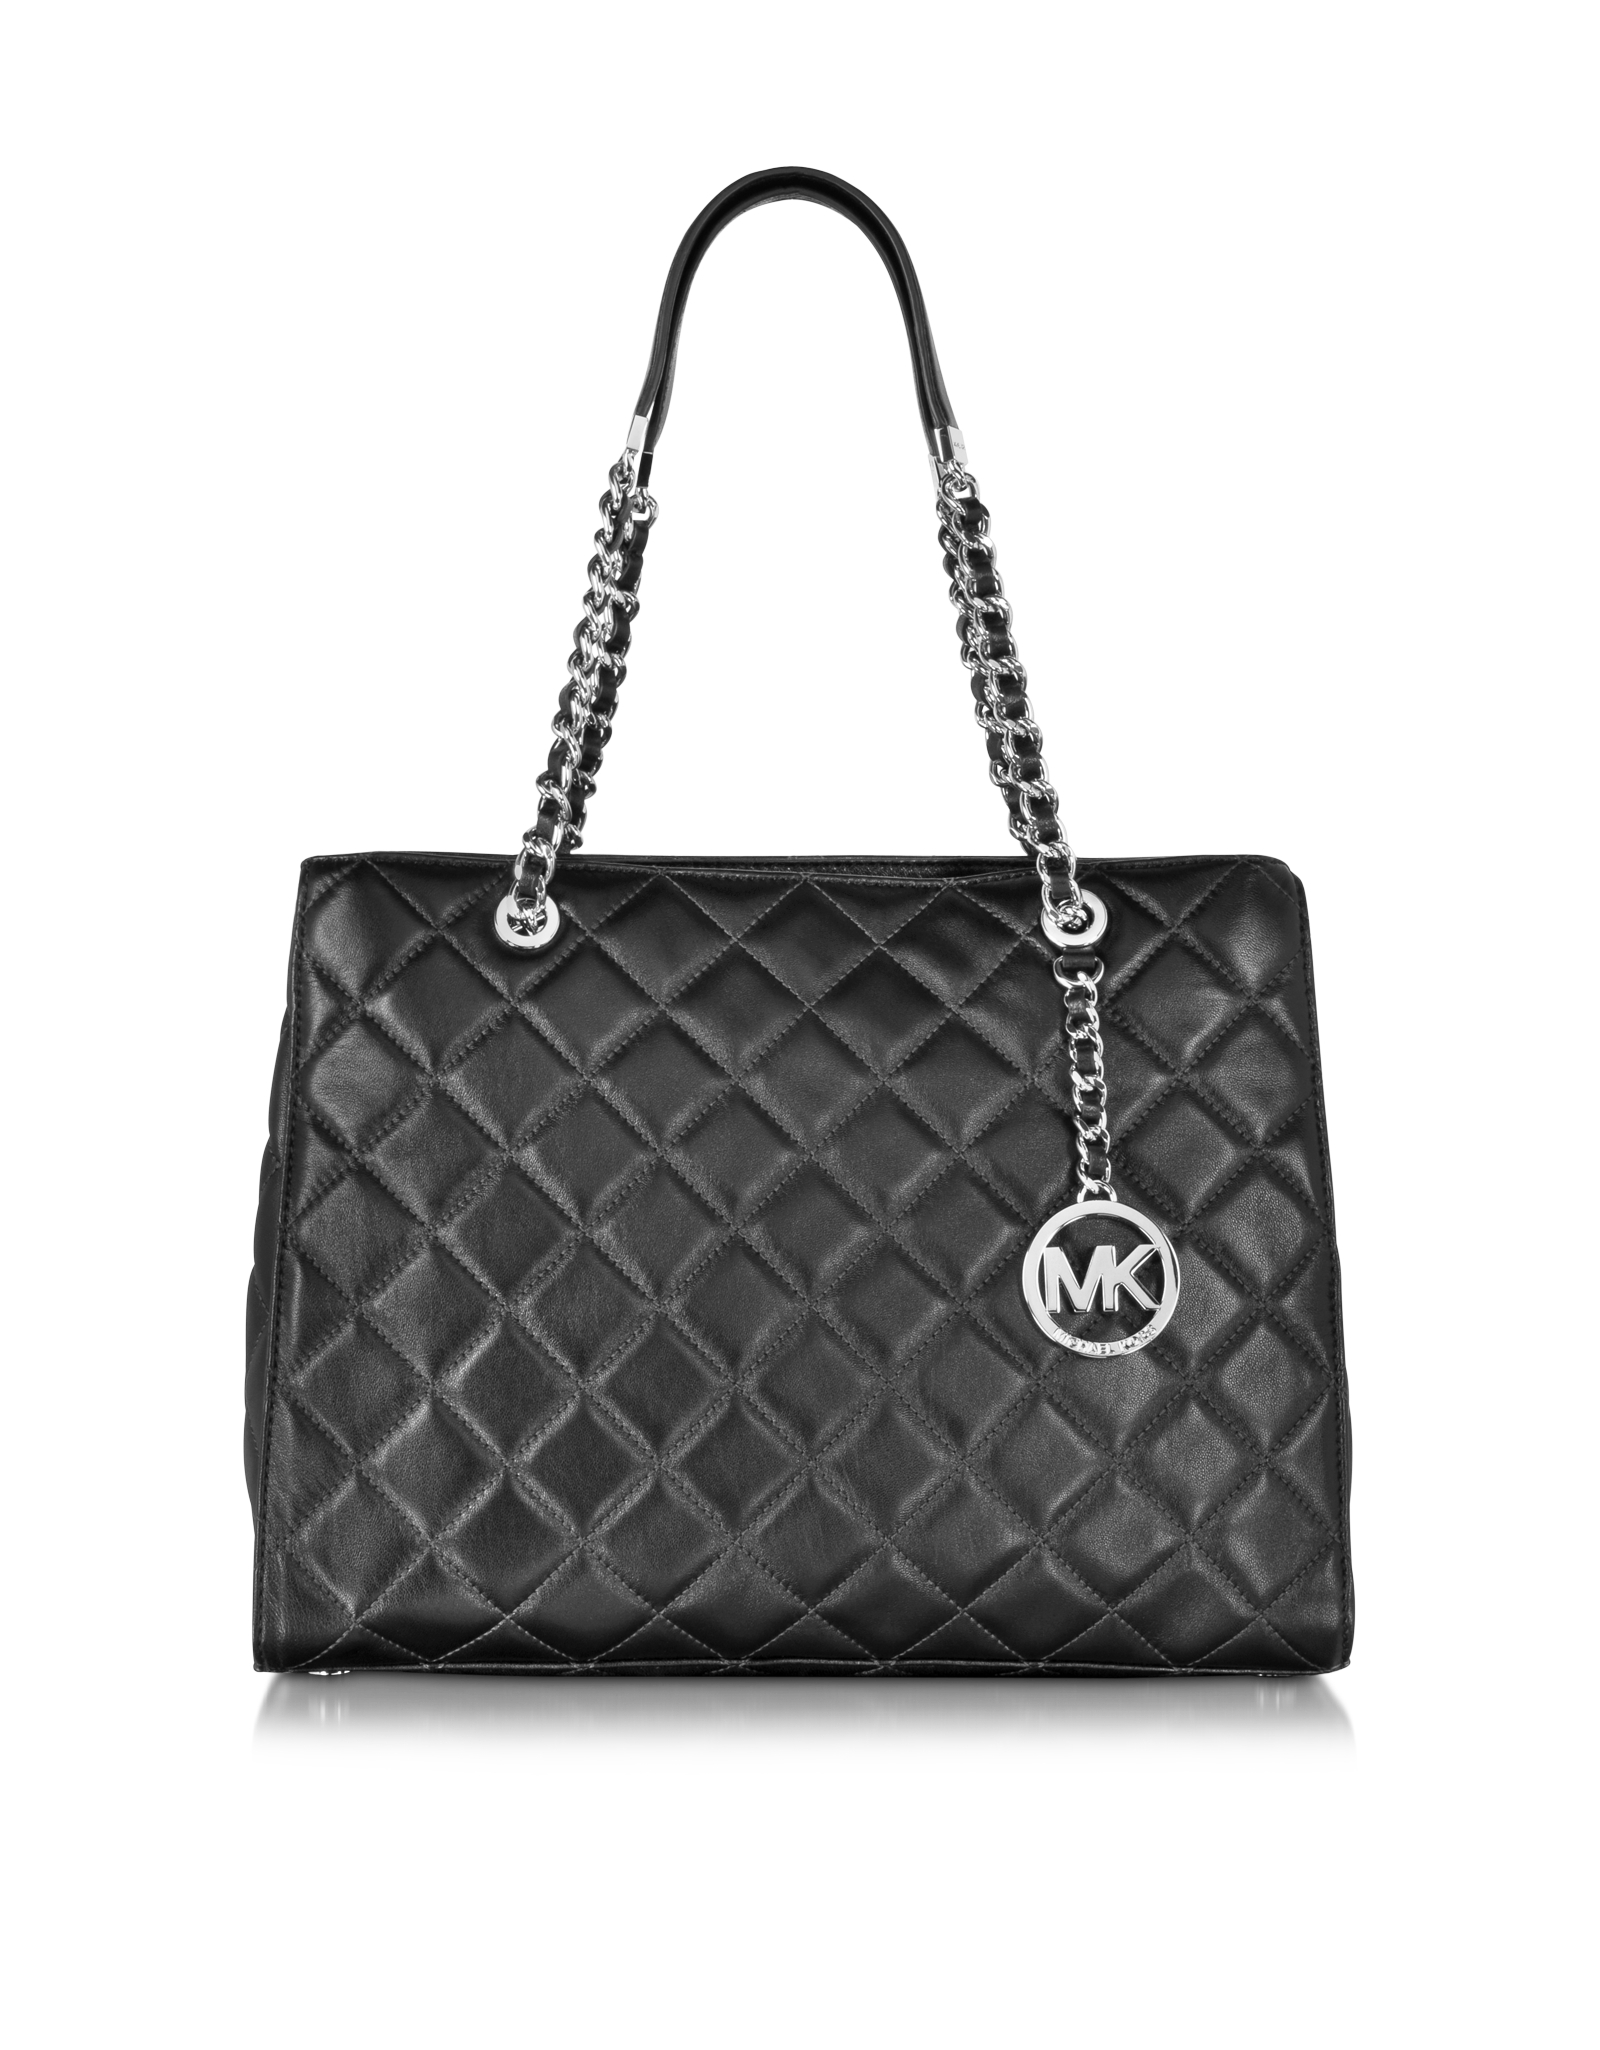 fdccdb55fd92 Michael Kors Black Leather Bag Uk | Stanford Center for Opportunity ...